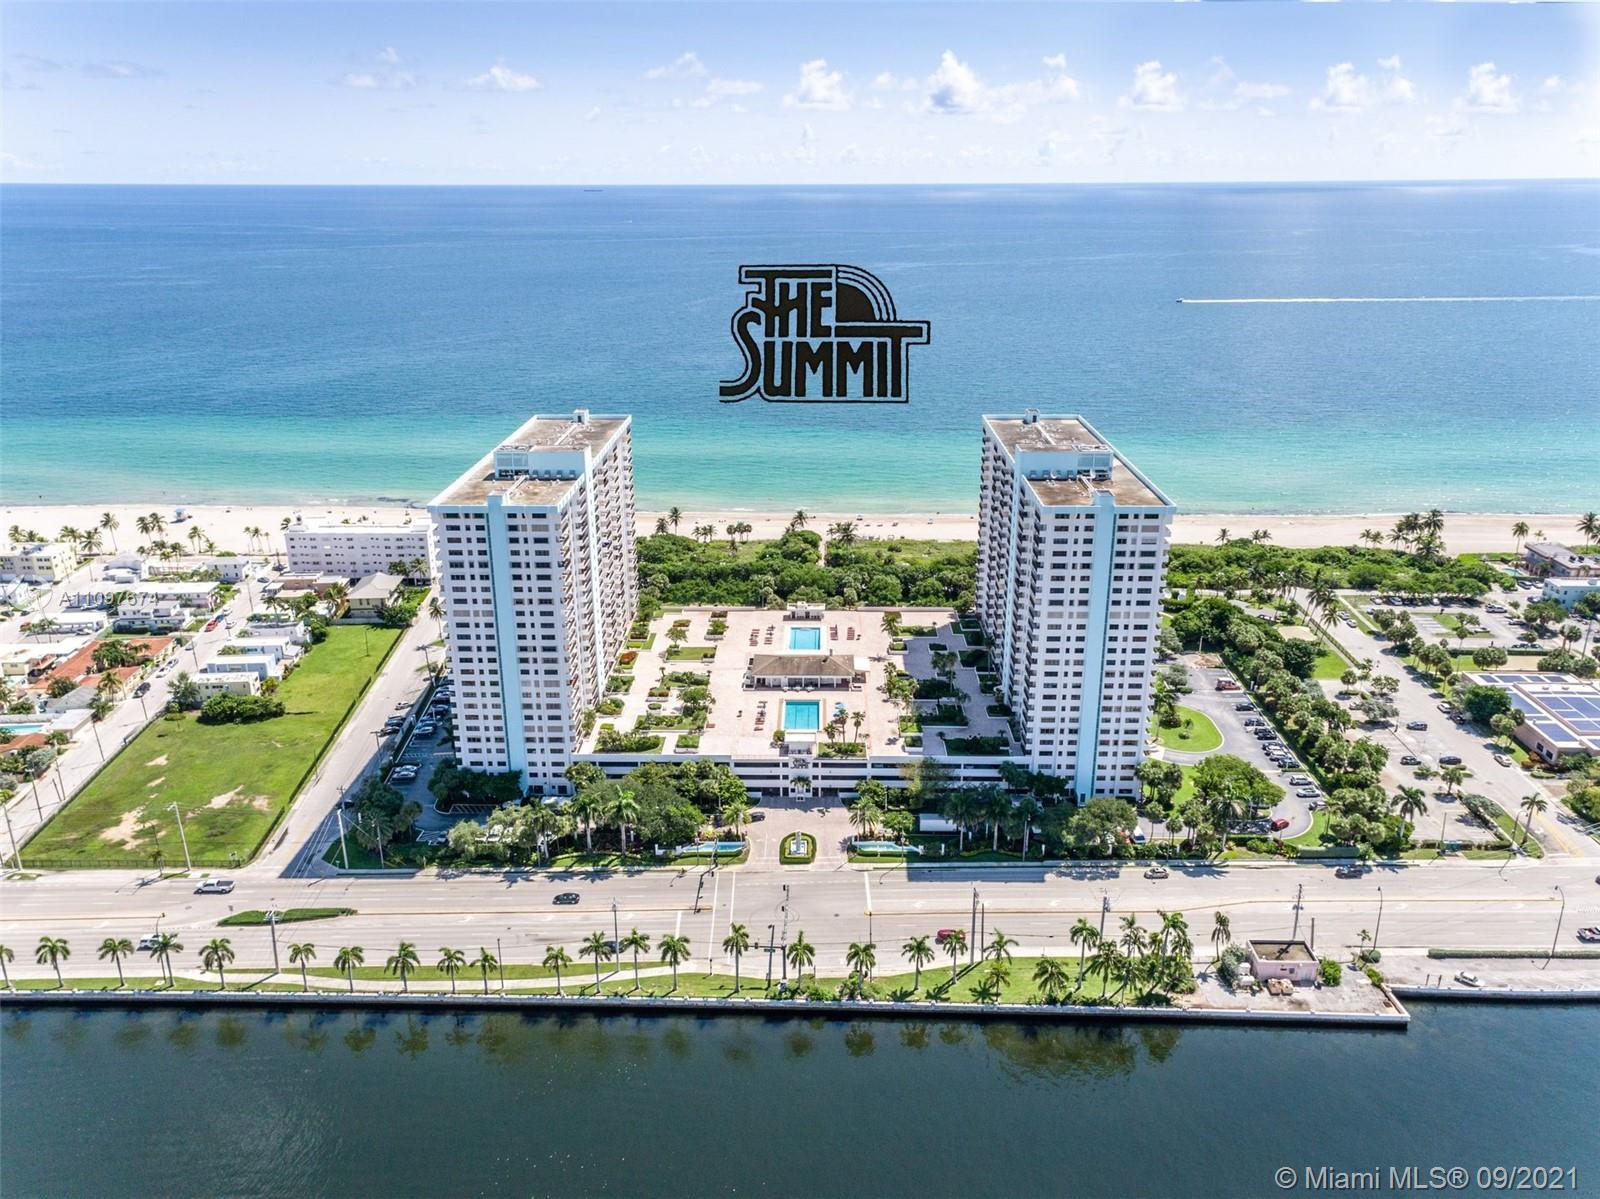 Bright & spacious 1,570sf 2 bed/2 bath split floor plan in The Summit. Spectacular ocean and Intraco